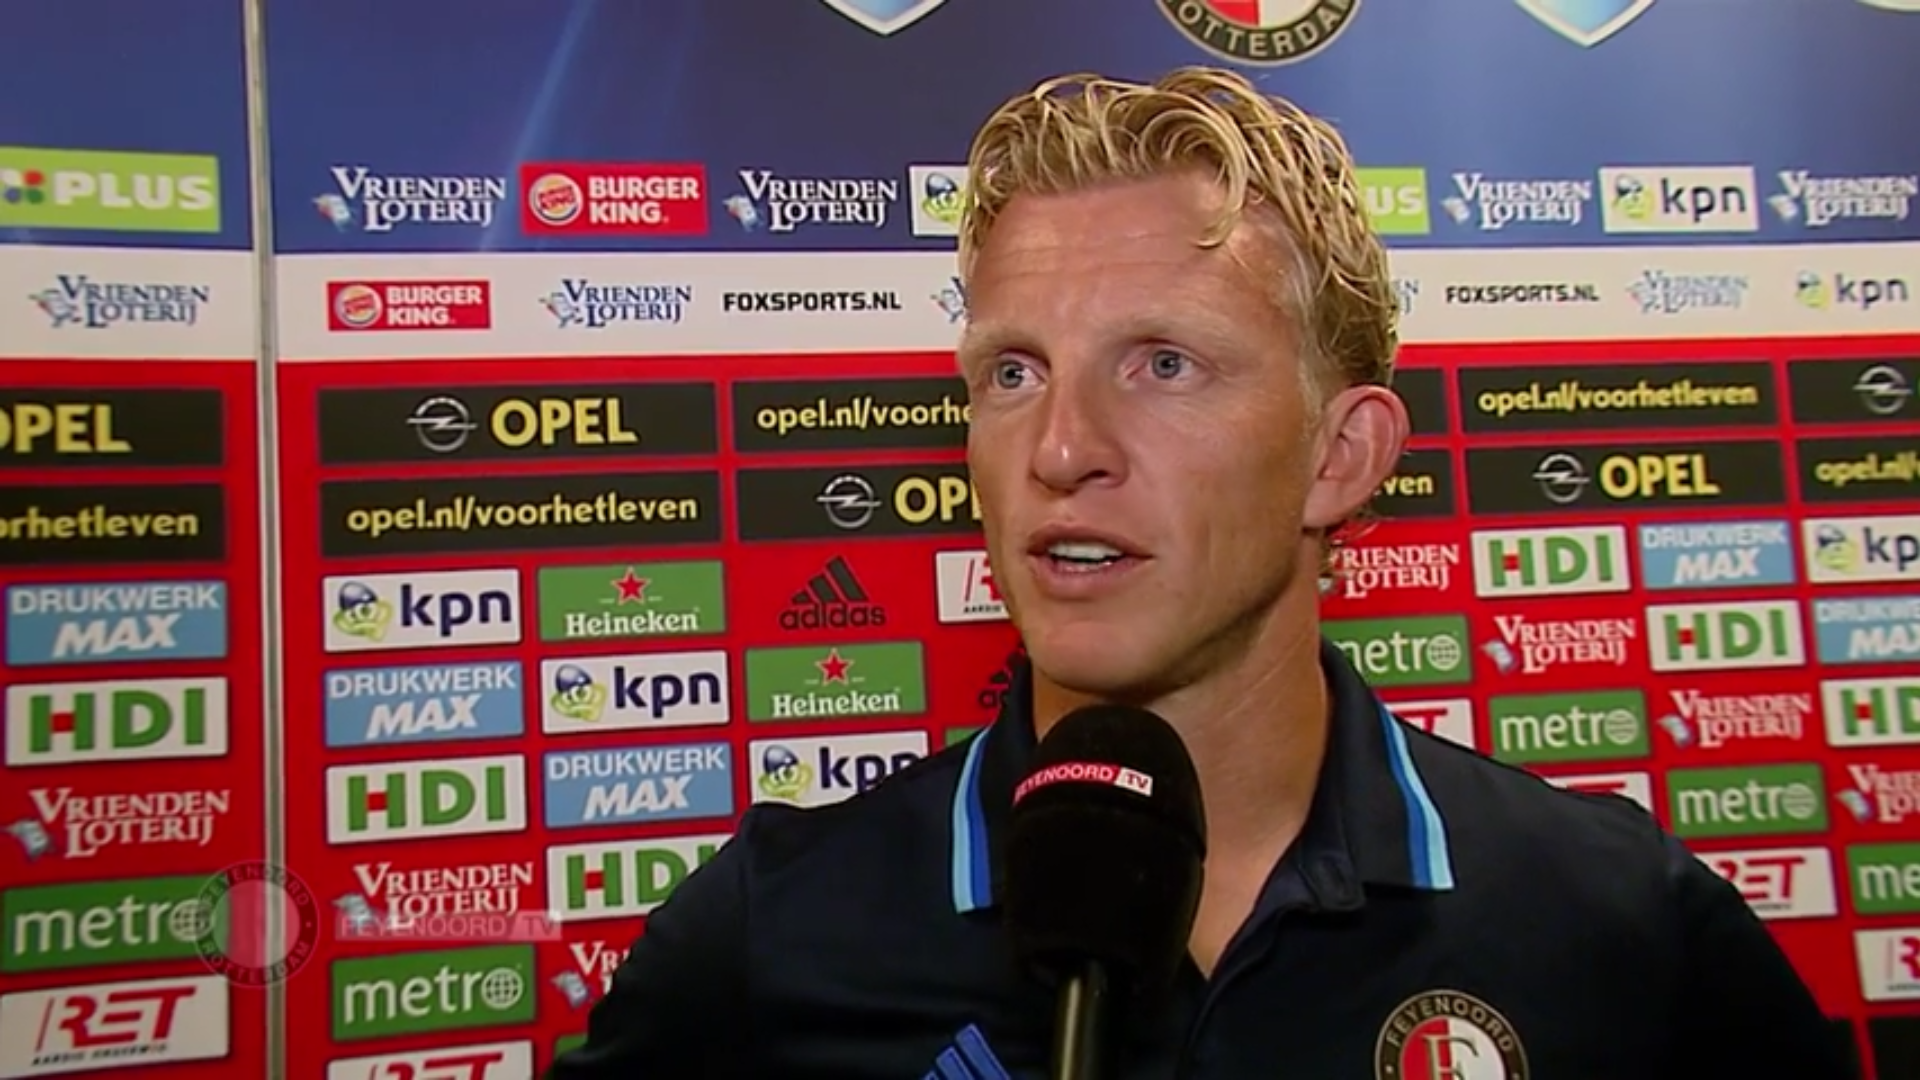 Kuyt%20screenshot